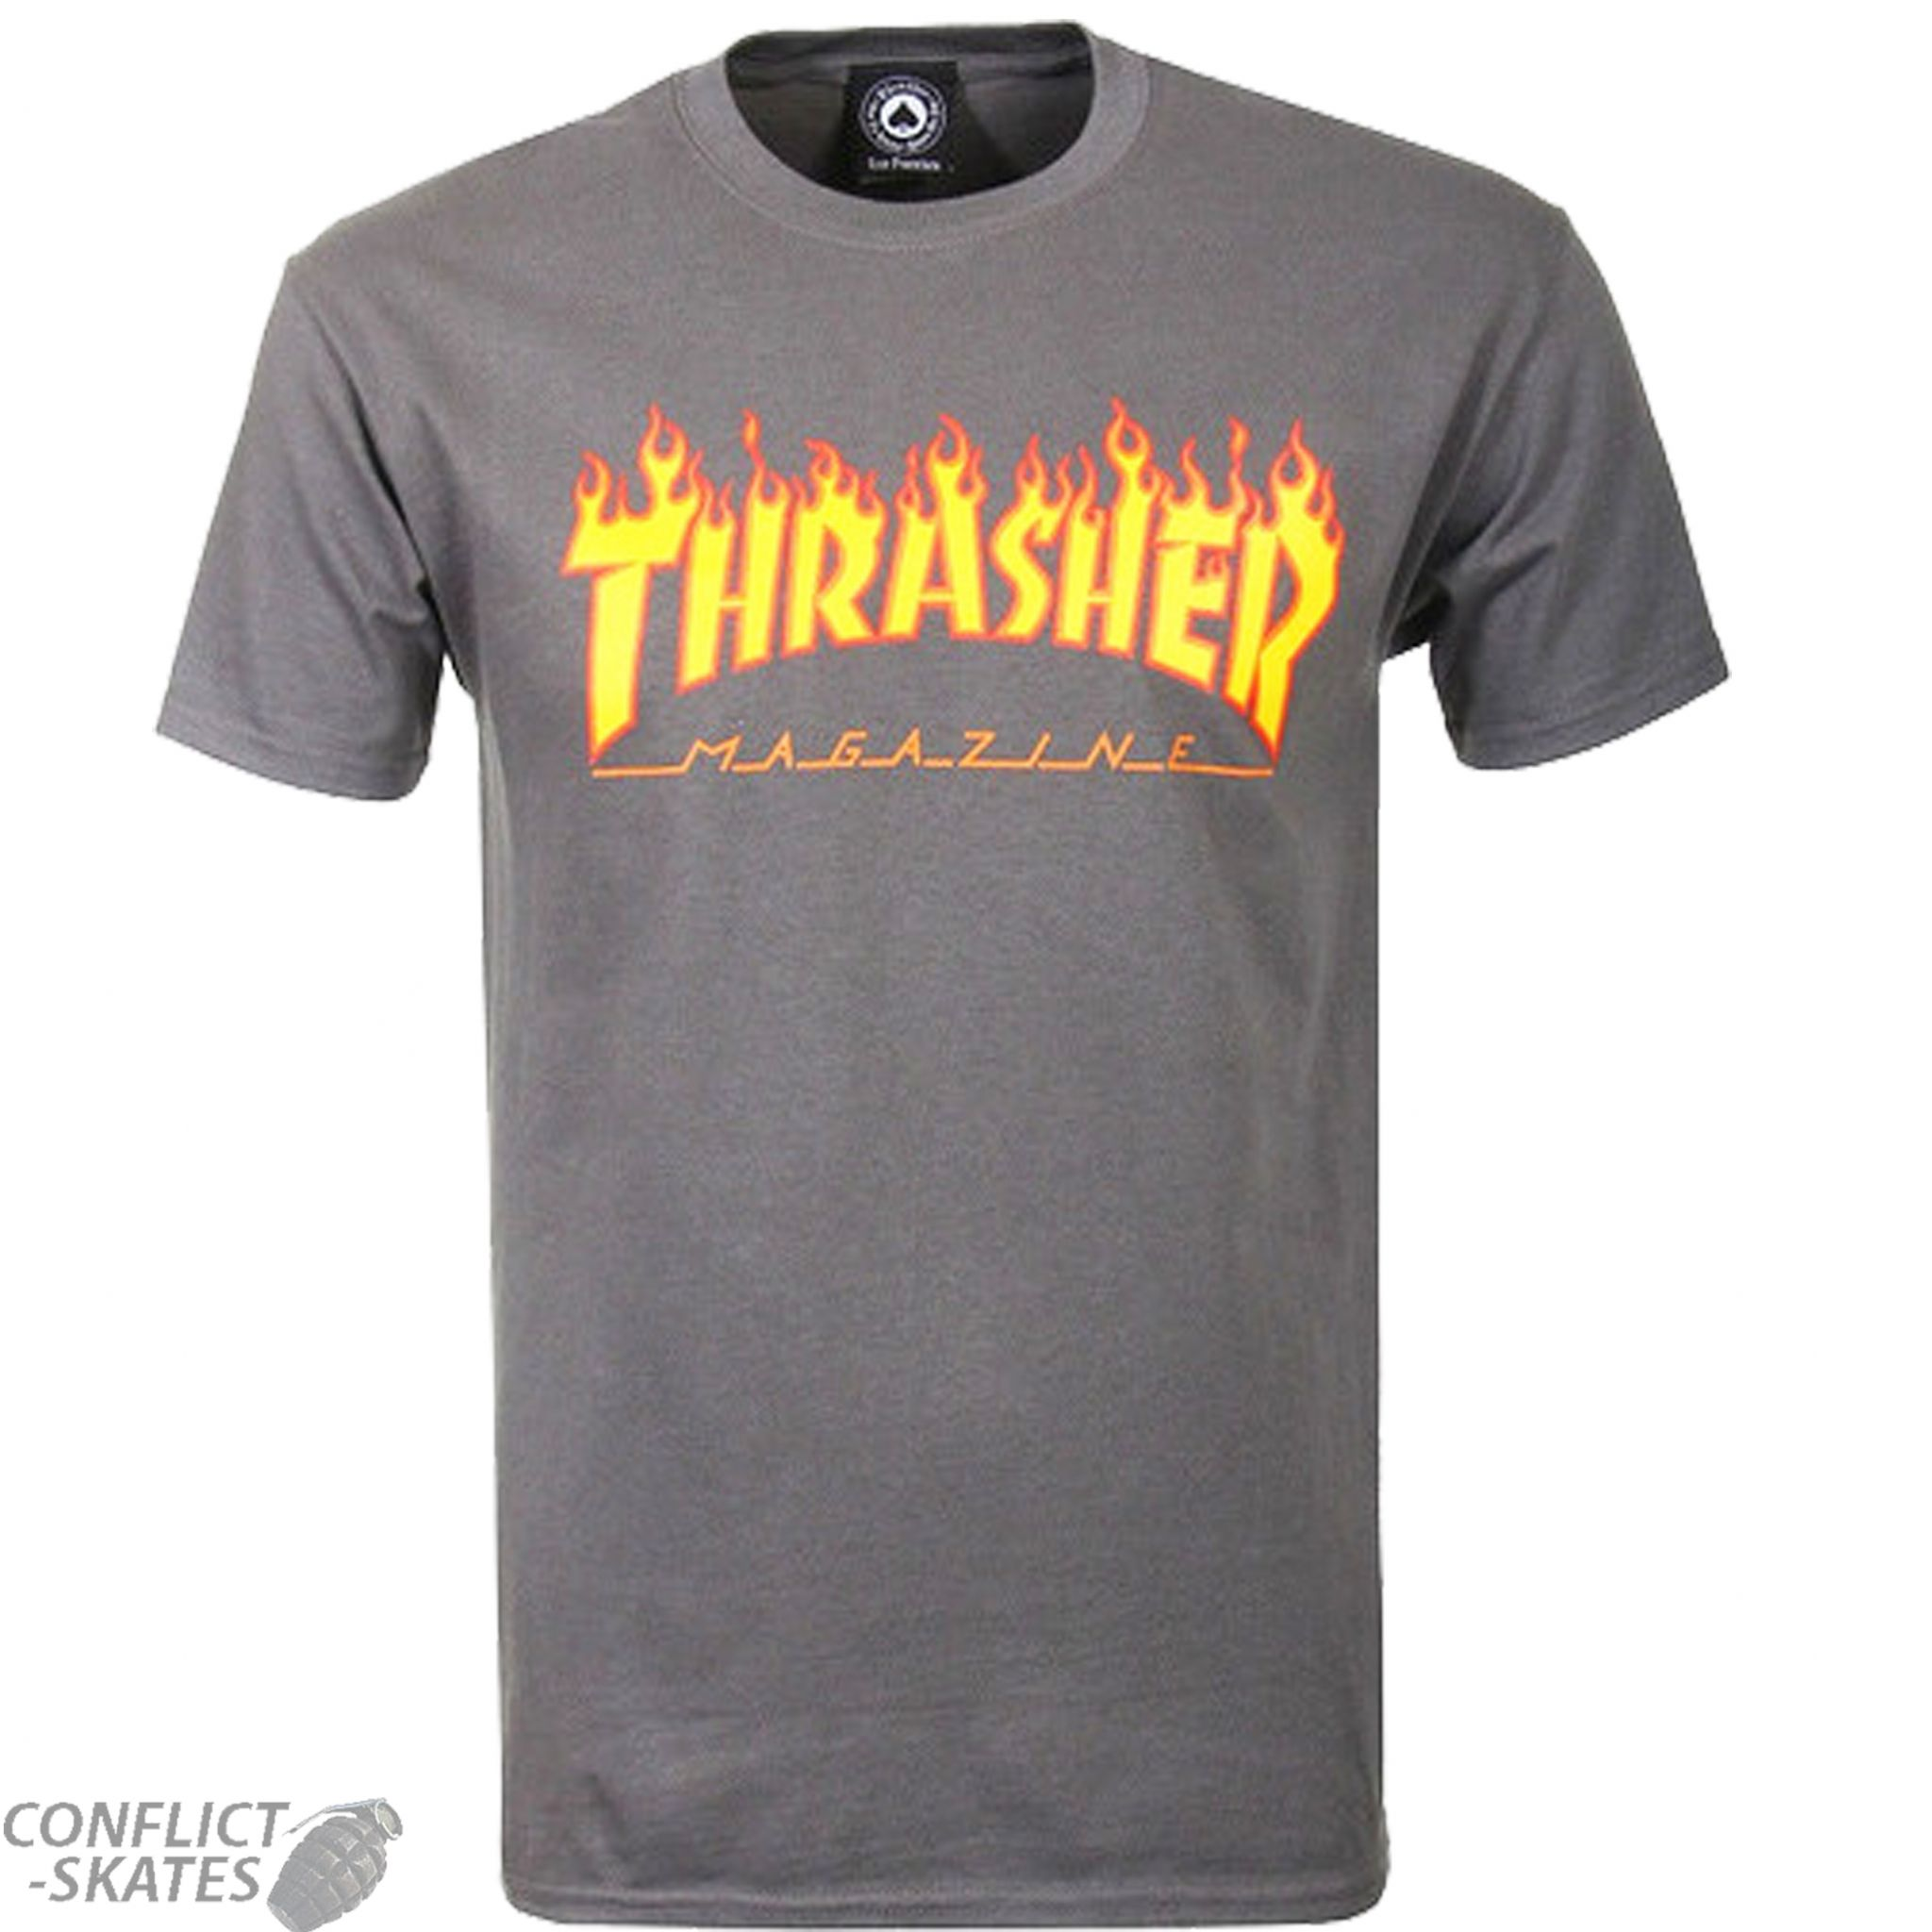 43461ace7a8a THRASHER MAGAZINE Flame Logo Skateboard T-Shirt Charcoal Grey S M L or XL